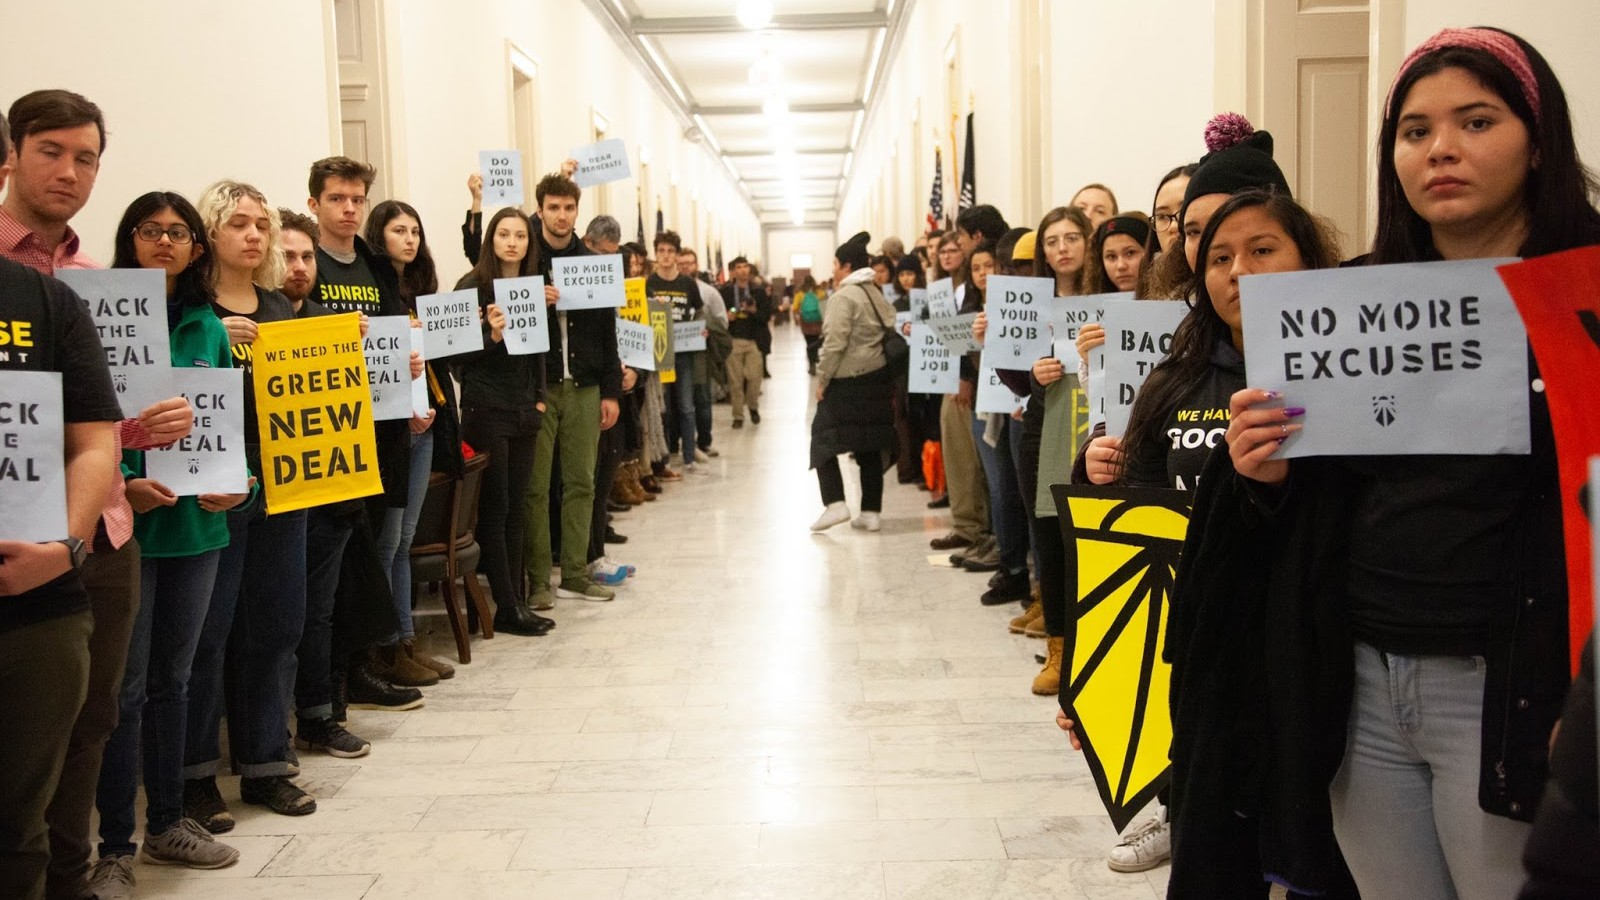 Pelosi offers meeting to Green New Deal activists after 61 protesters are arrested at her office